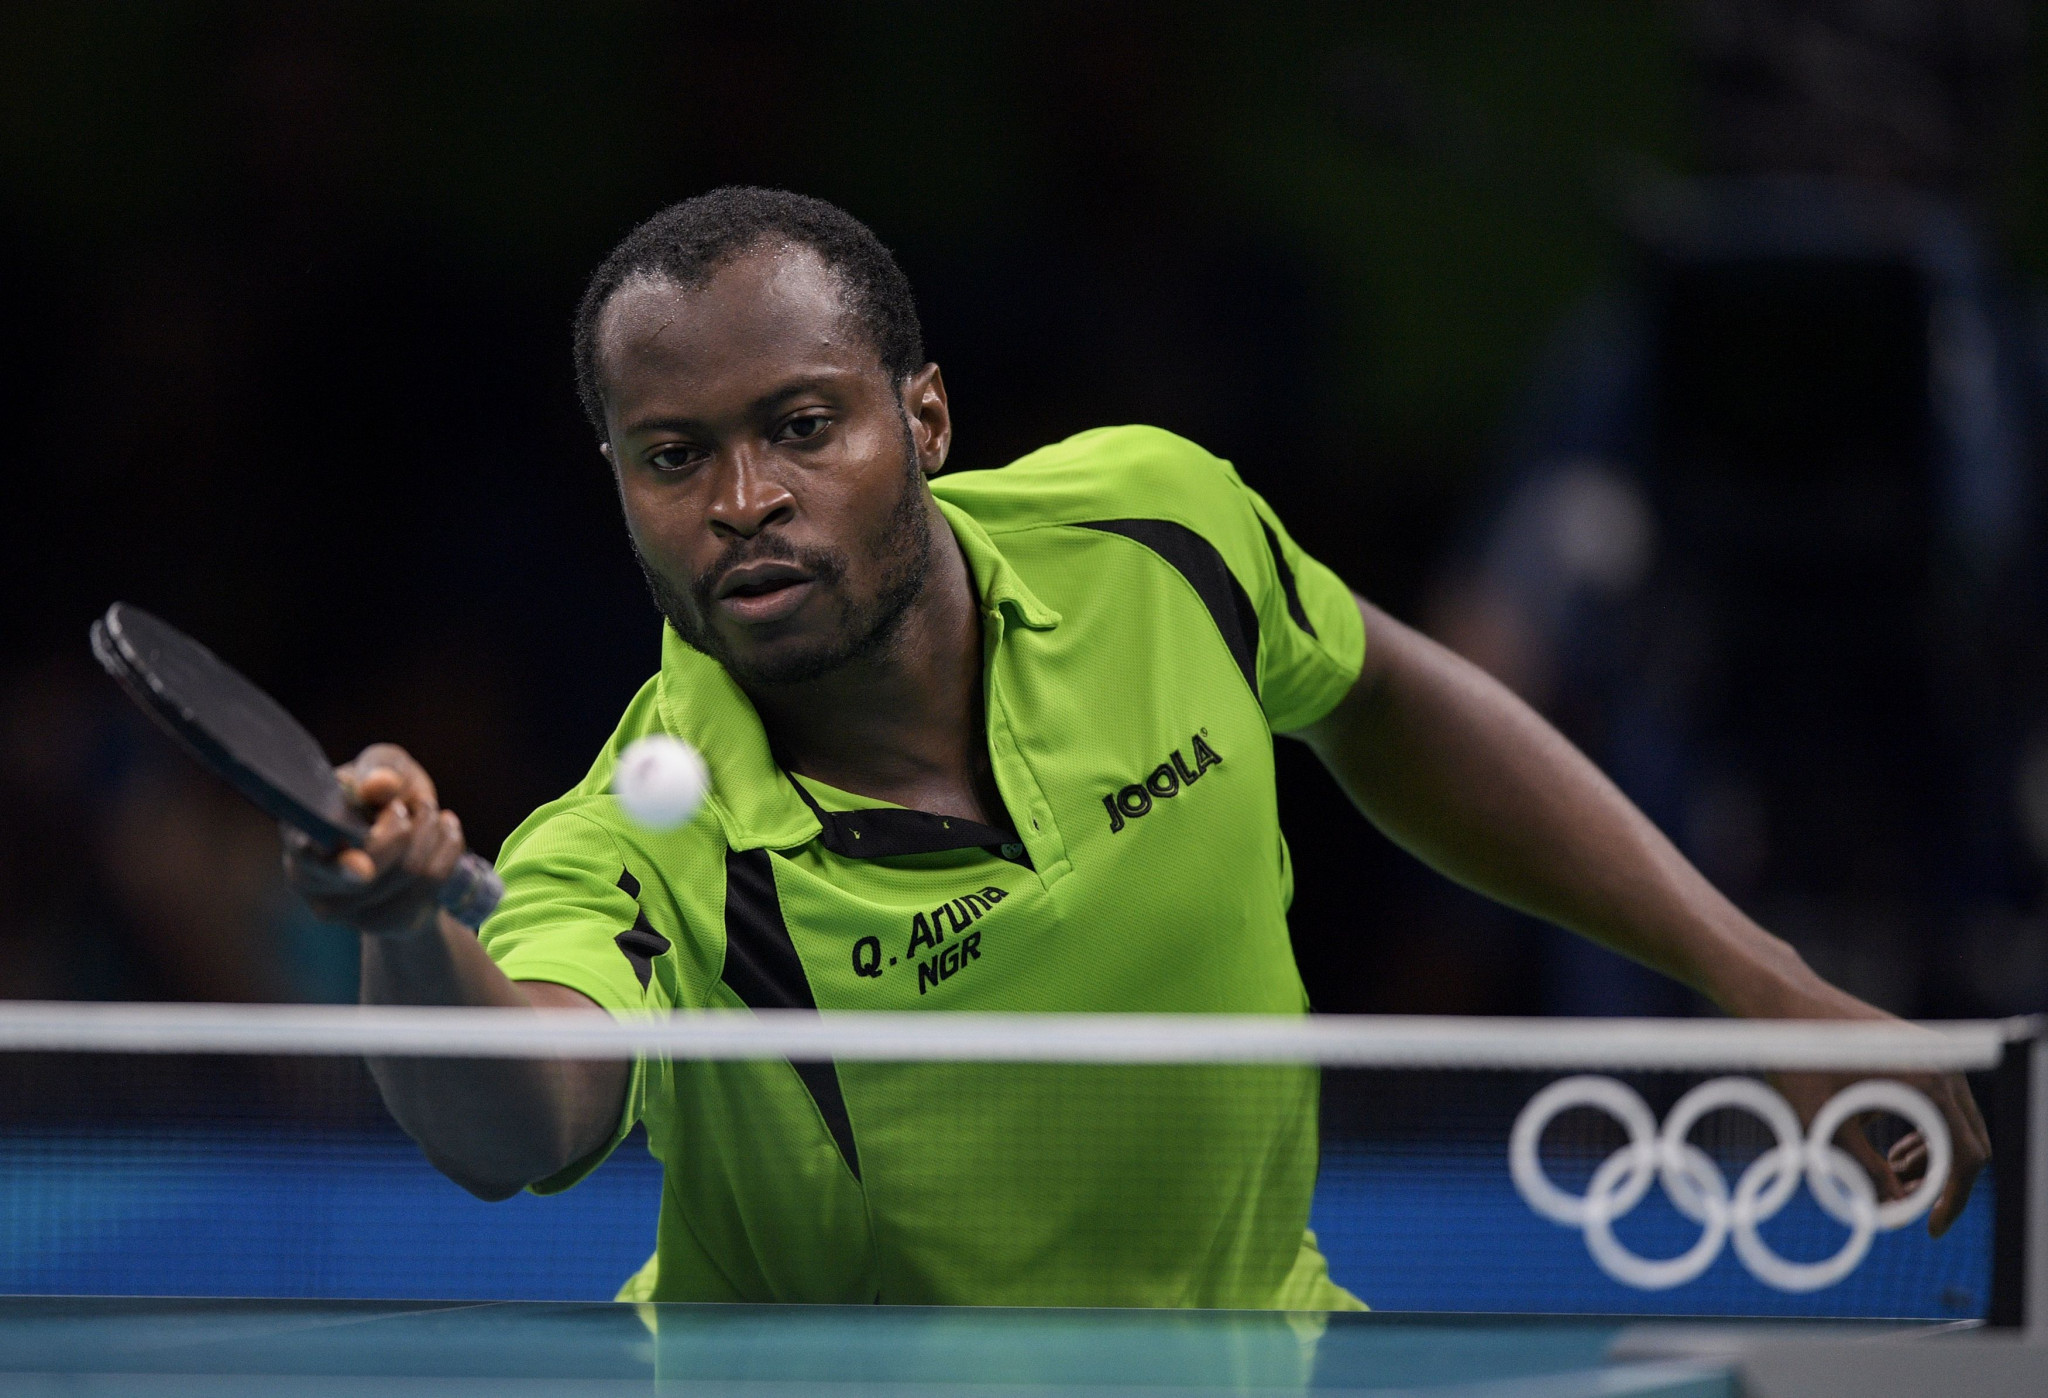 Quadri Aruna's performance at the Rio 2016 Olympic Games inspired the African Table Tennis Federation to work with Athletic Club de Boulogne-Billancourt ©Getty Images